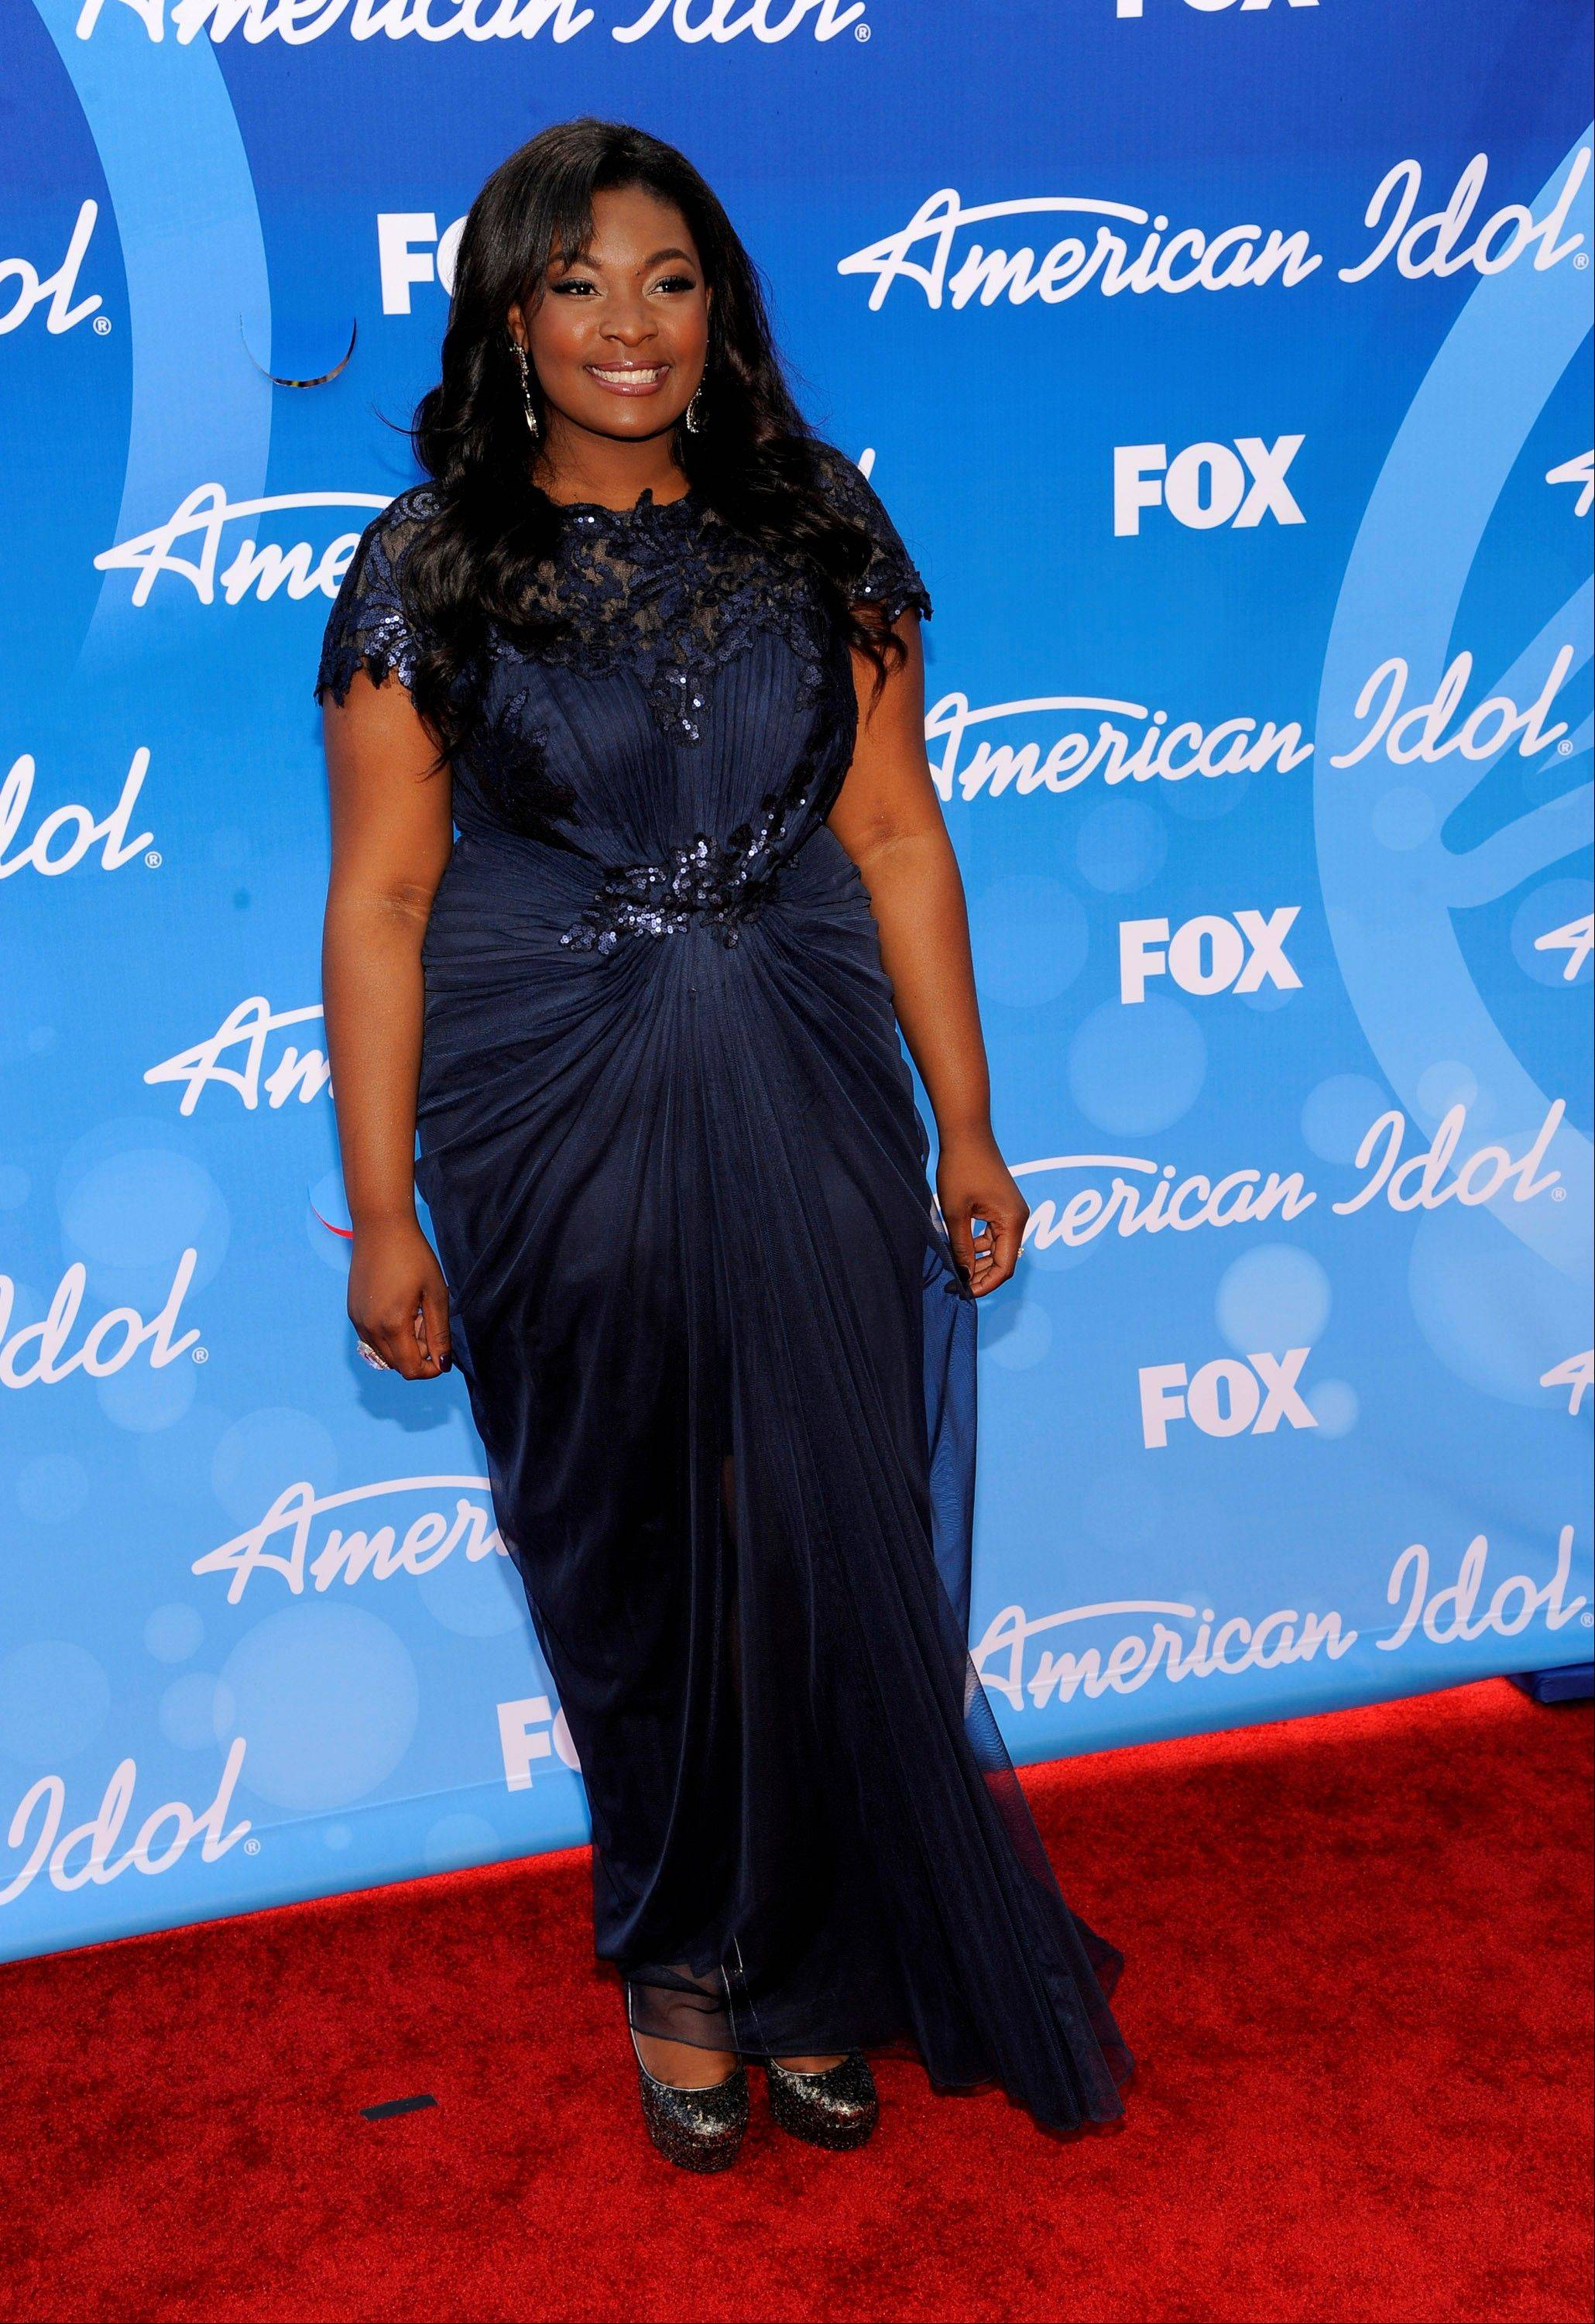 Candice Glover arrives at the �American Idol� finale Thursday at the Nokia Theatre at L.A. Live in Los Angeles.